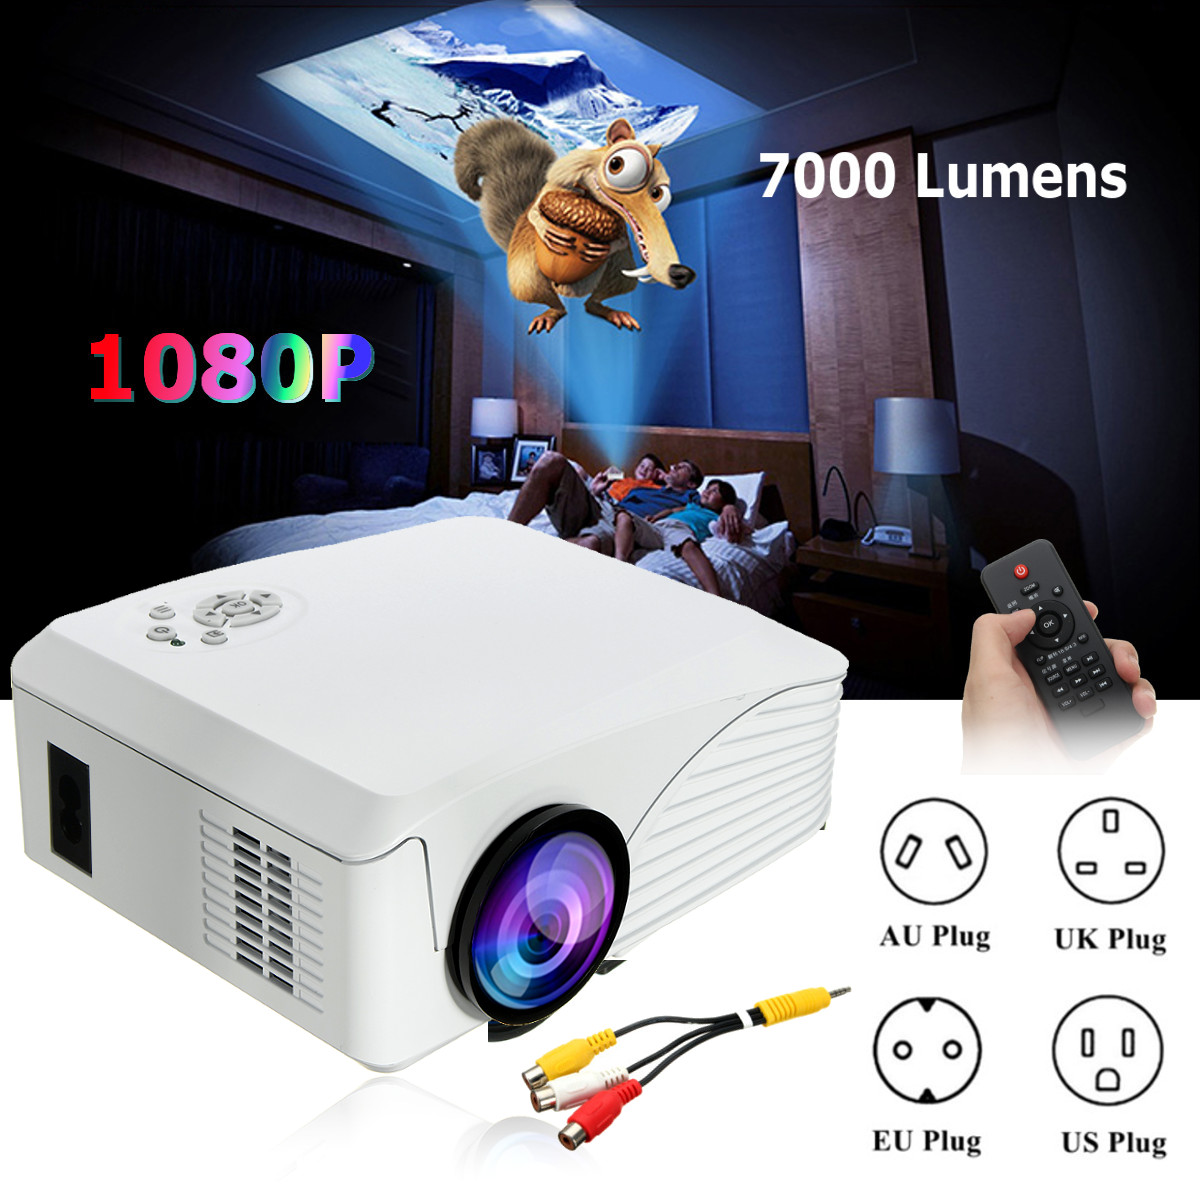 Portable <font><b>7000</b></font> <font><b>Lumens</b></font> HD 1080P 3D Multimedia Projector LED Home Theater HDMI USB Home Theatre System image